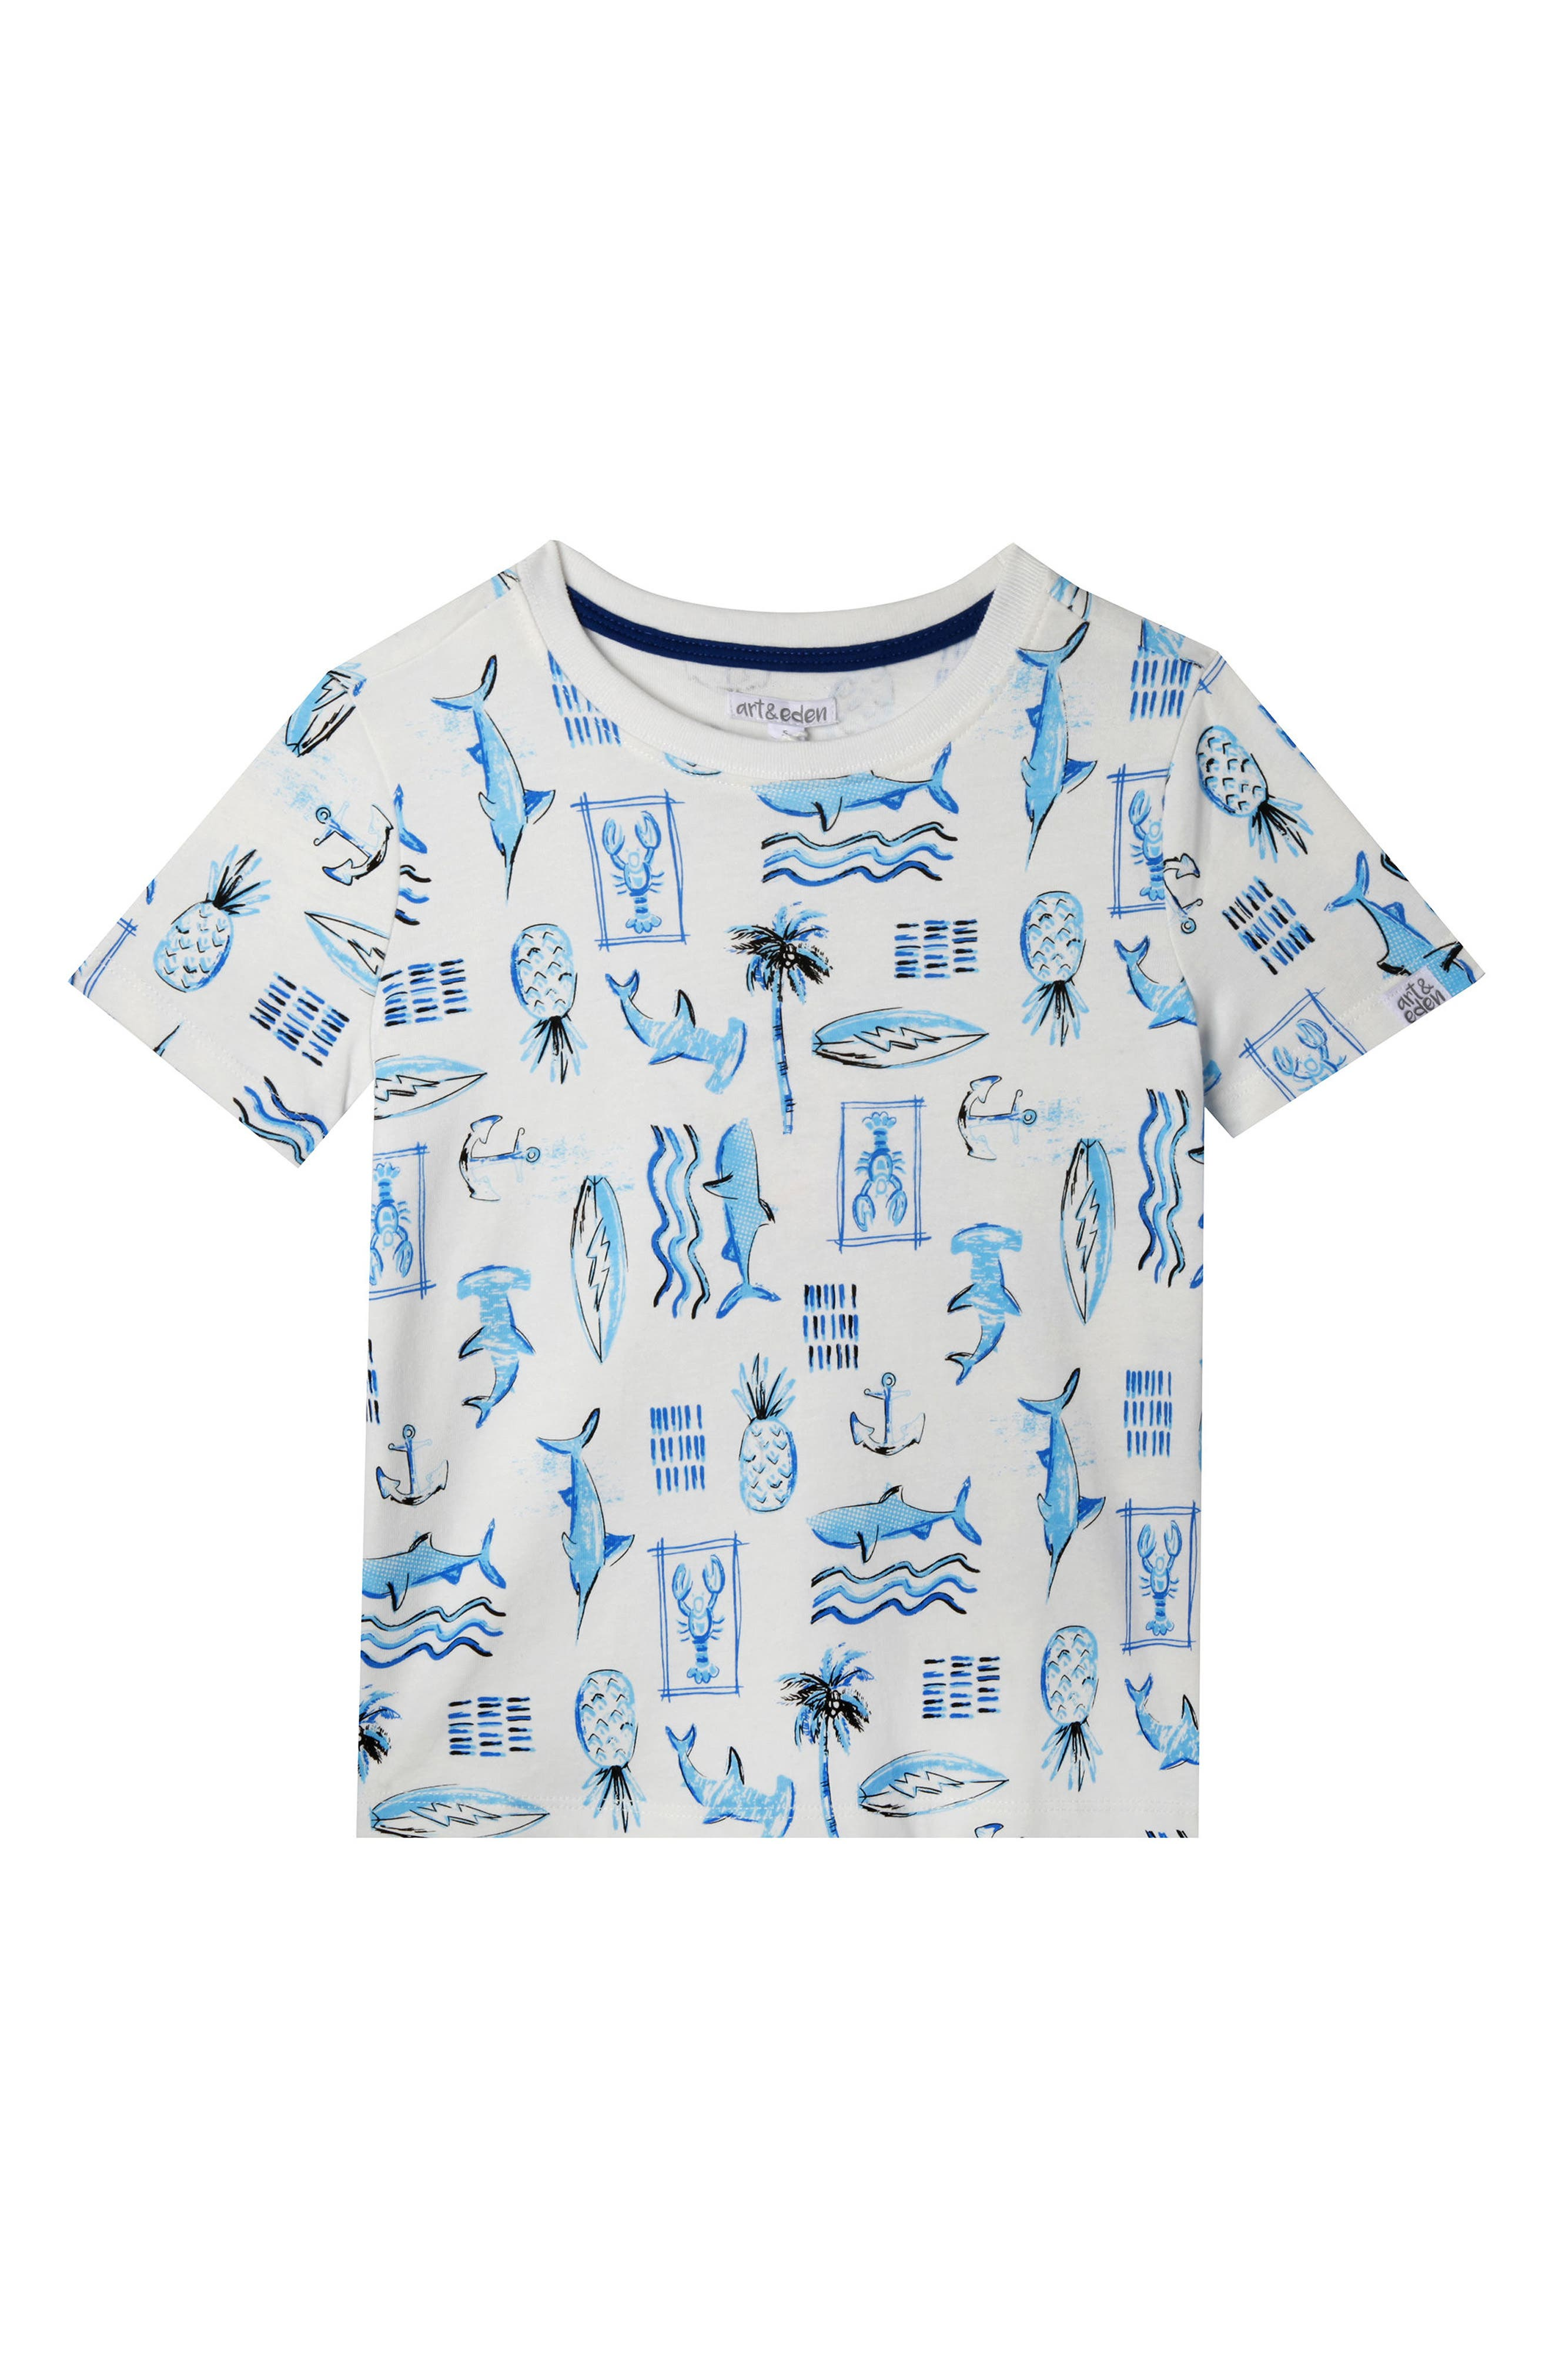 William Nautical Organic Cotton T-Shirt,                             Main thumbnail 1, color,                             900